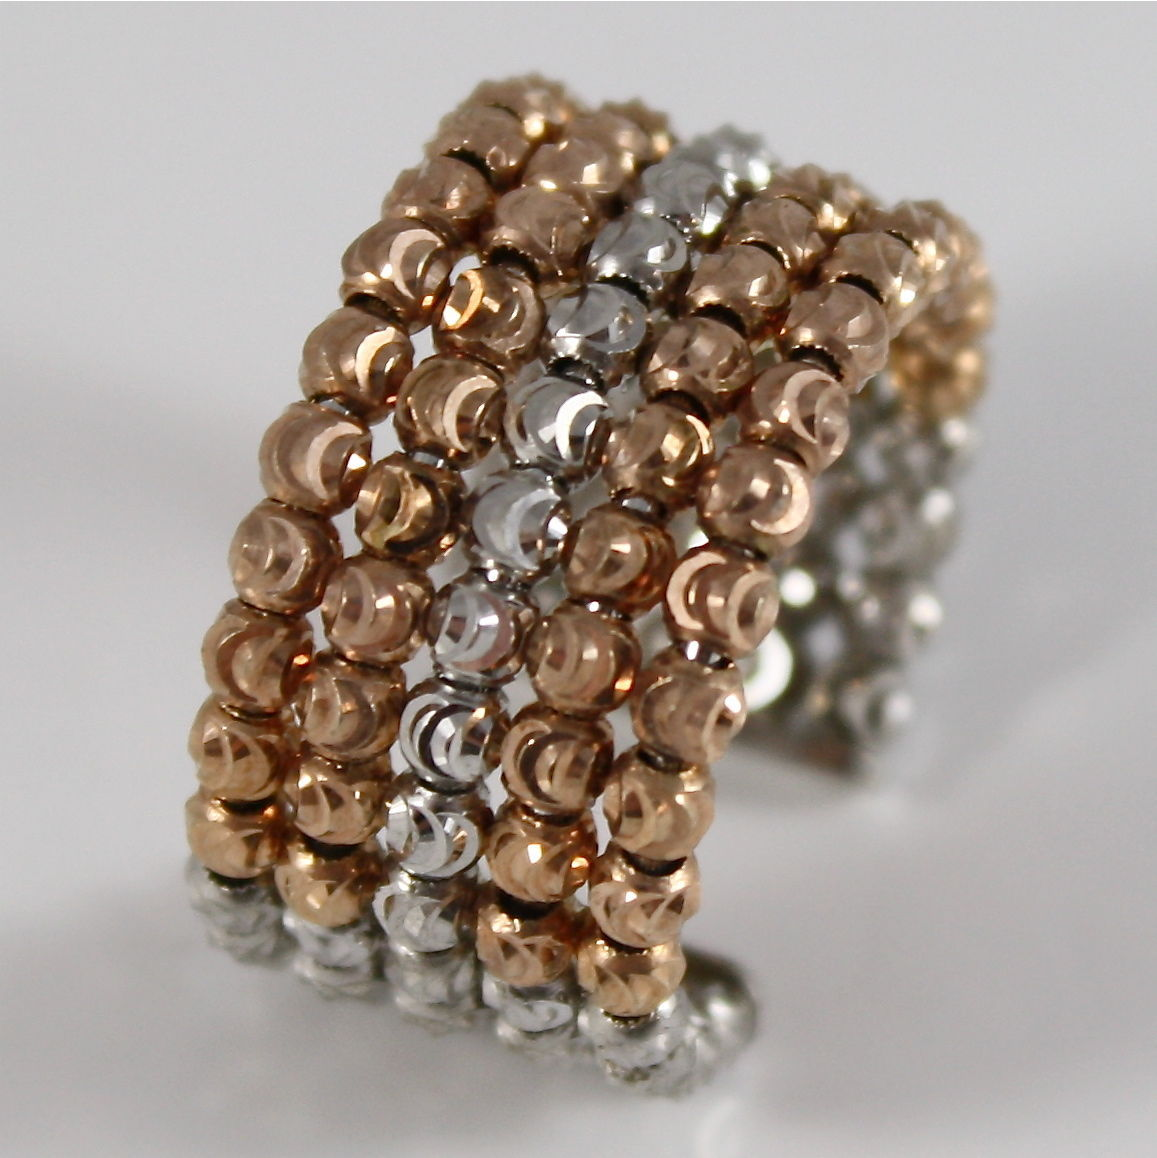 925 SILVER RING OFFICINA BERNARDI FACETED BALLS MADE IN ITALY FIVE WIRE P. ROSE